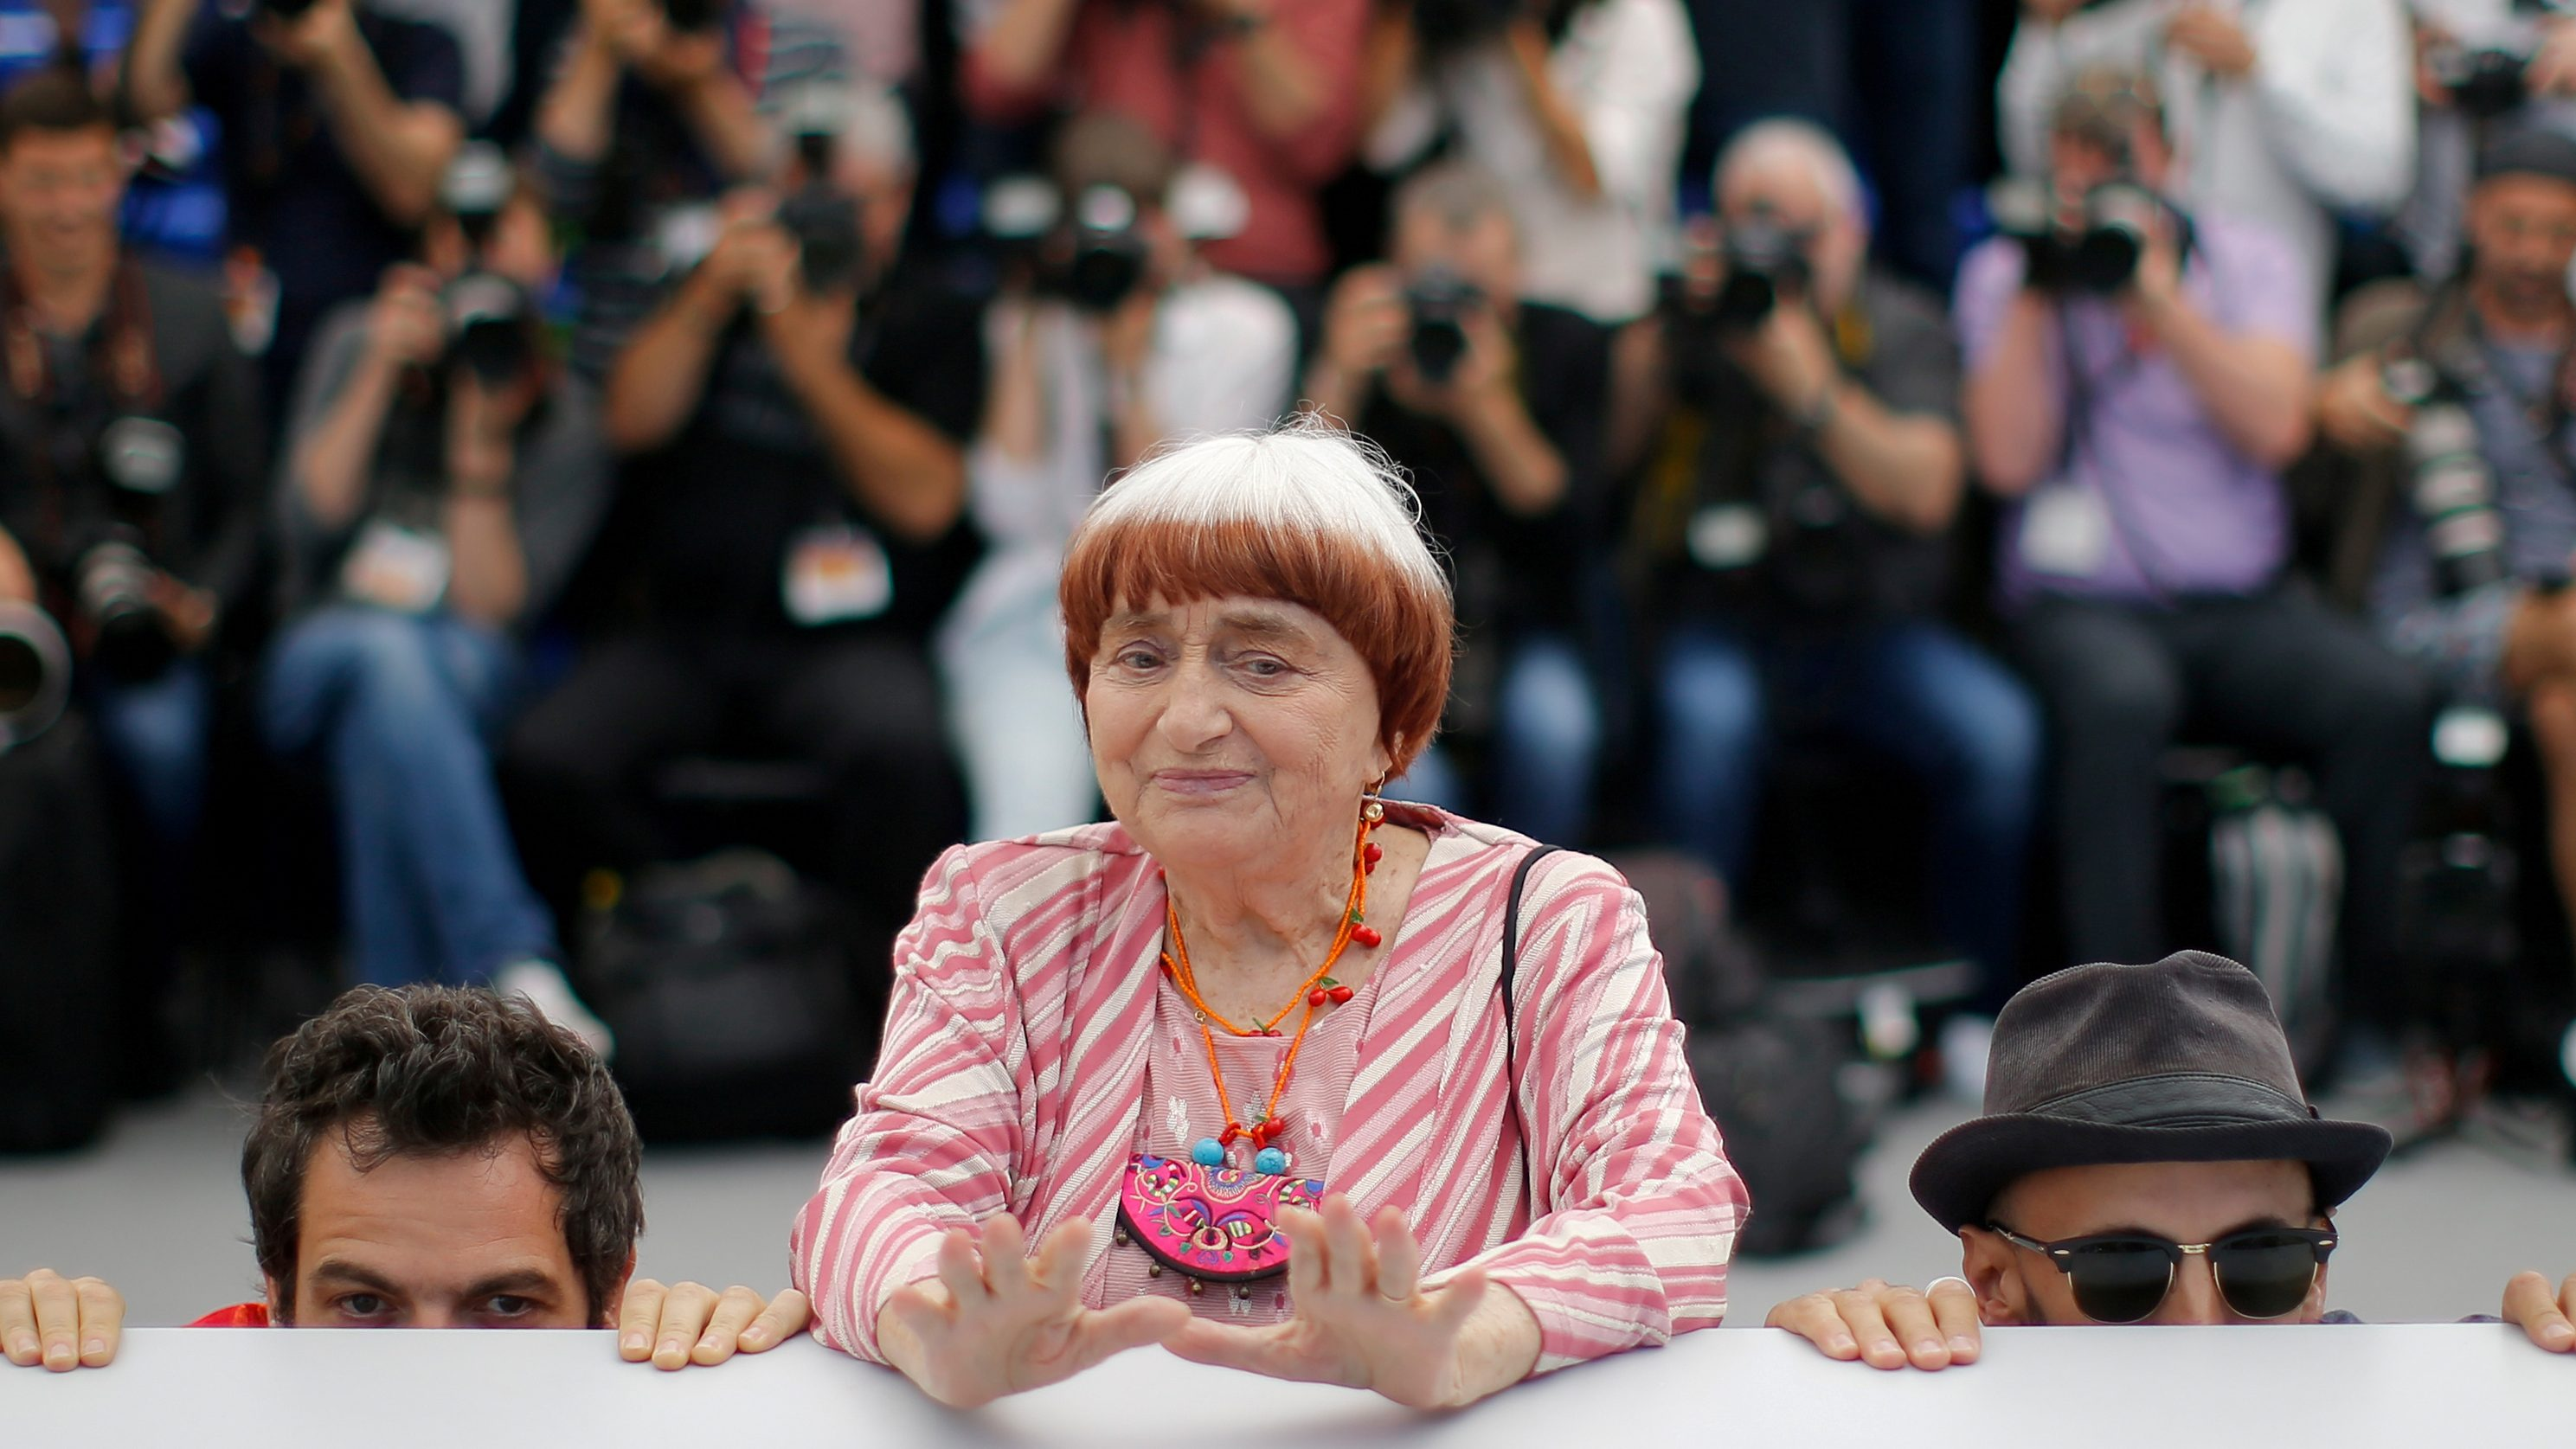 FILE PHOTO: 70th Cannes Film Festival - Photocall for the film Visages, villages (Faces Places) out of competition